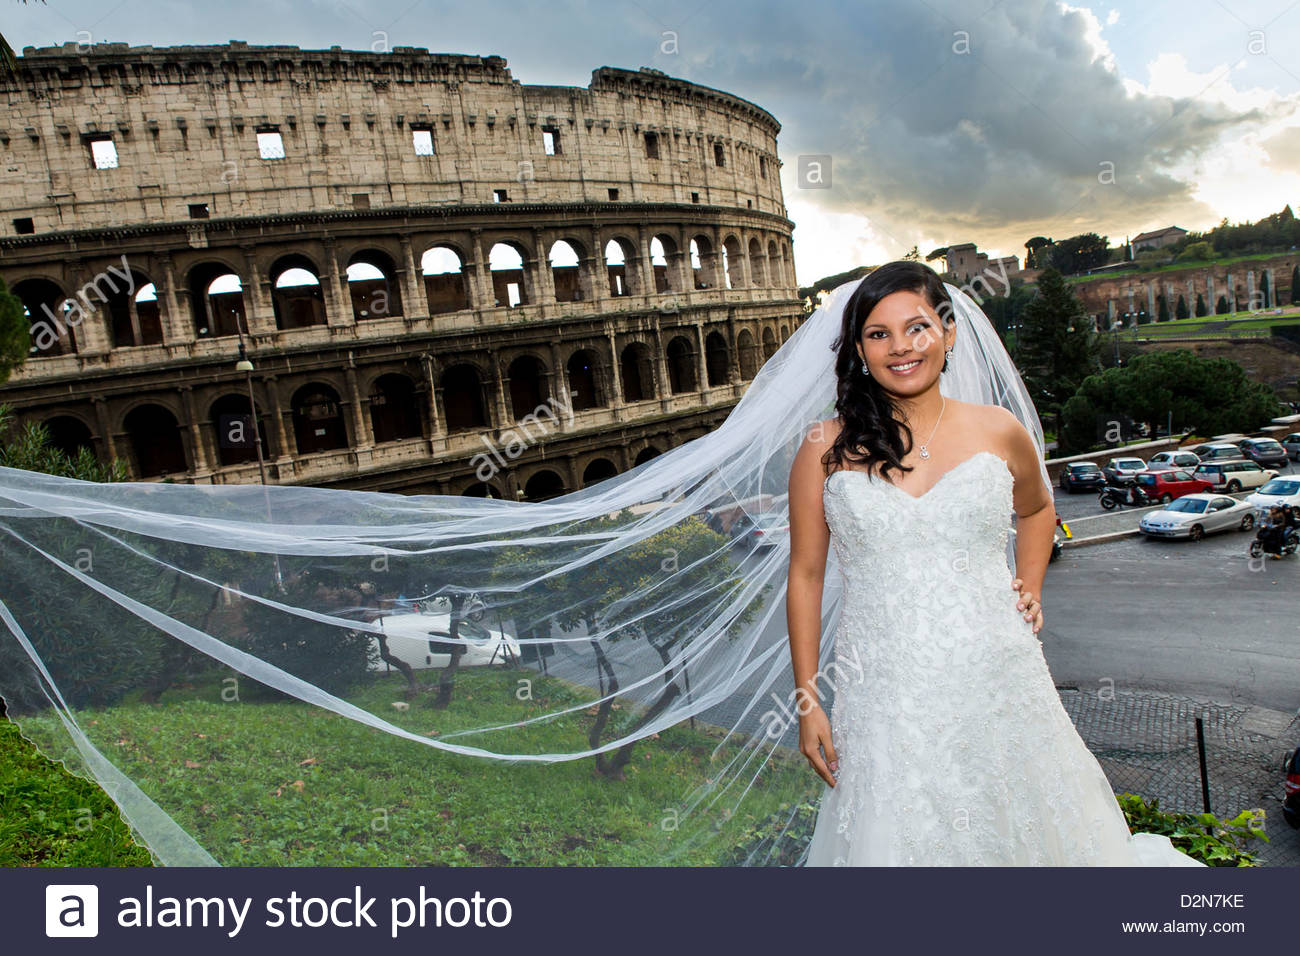 Bride in front of the roman Colosseum - Stock Image